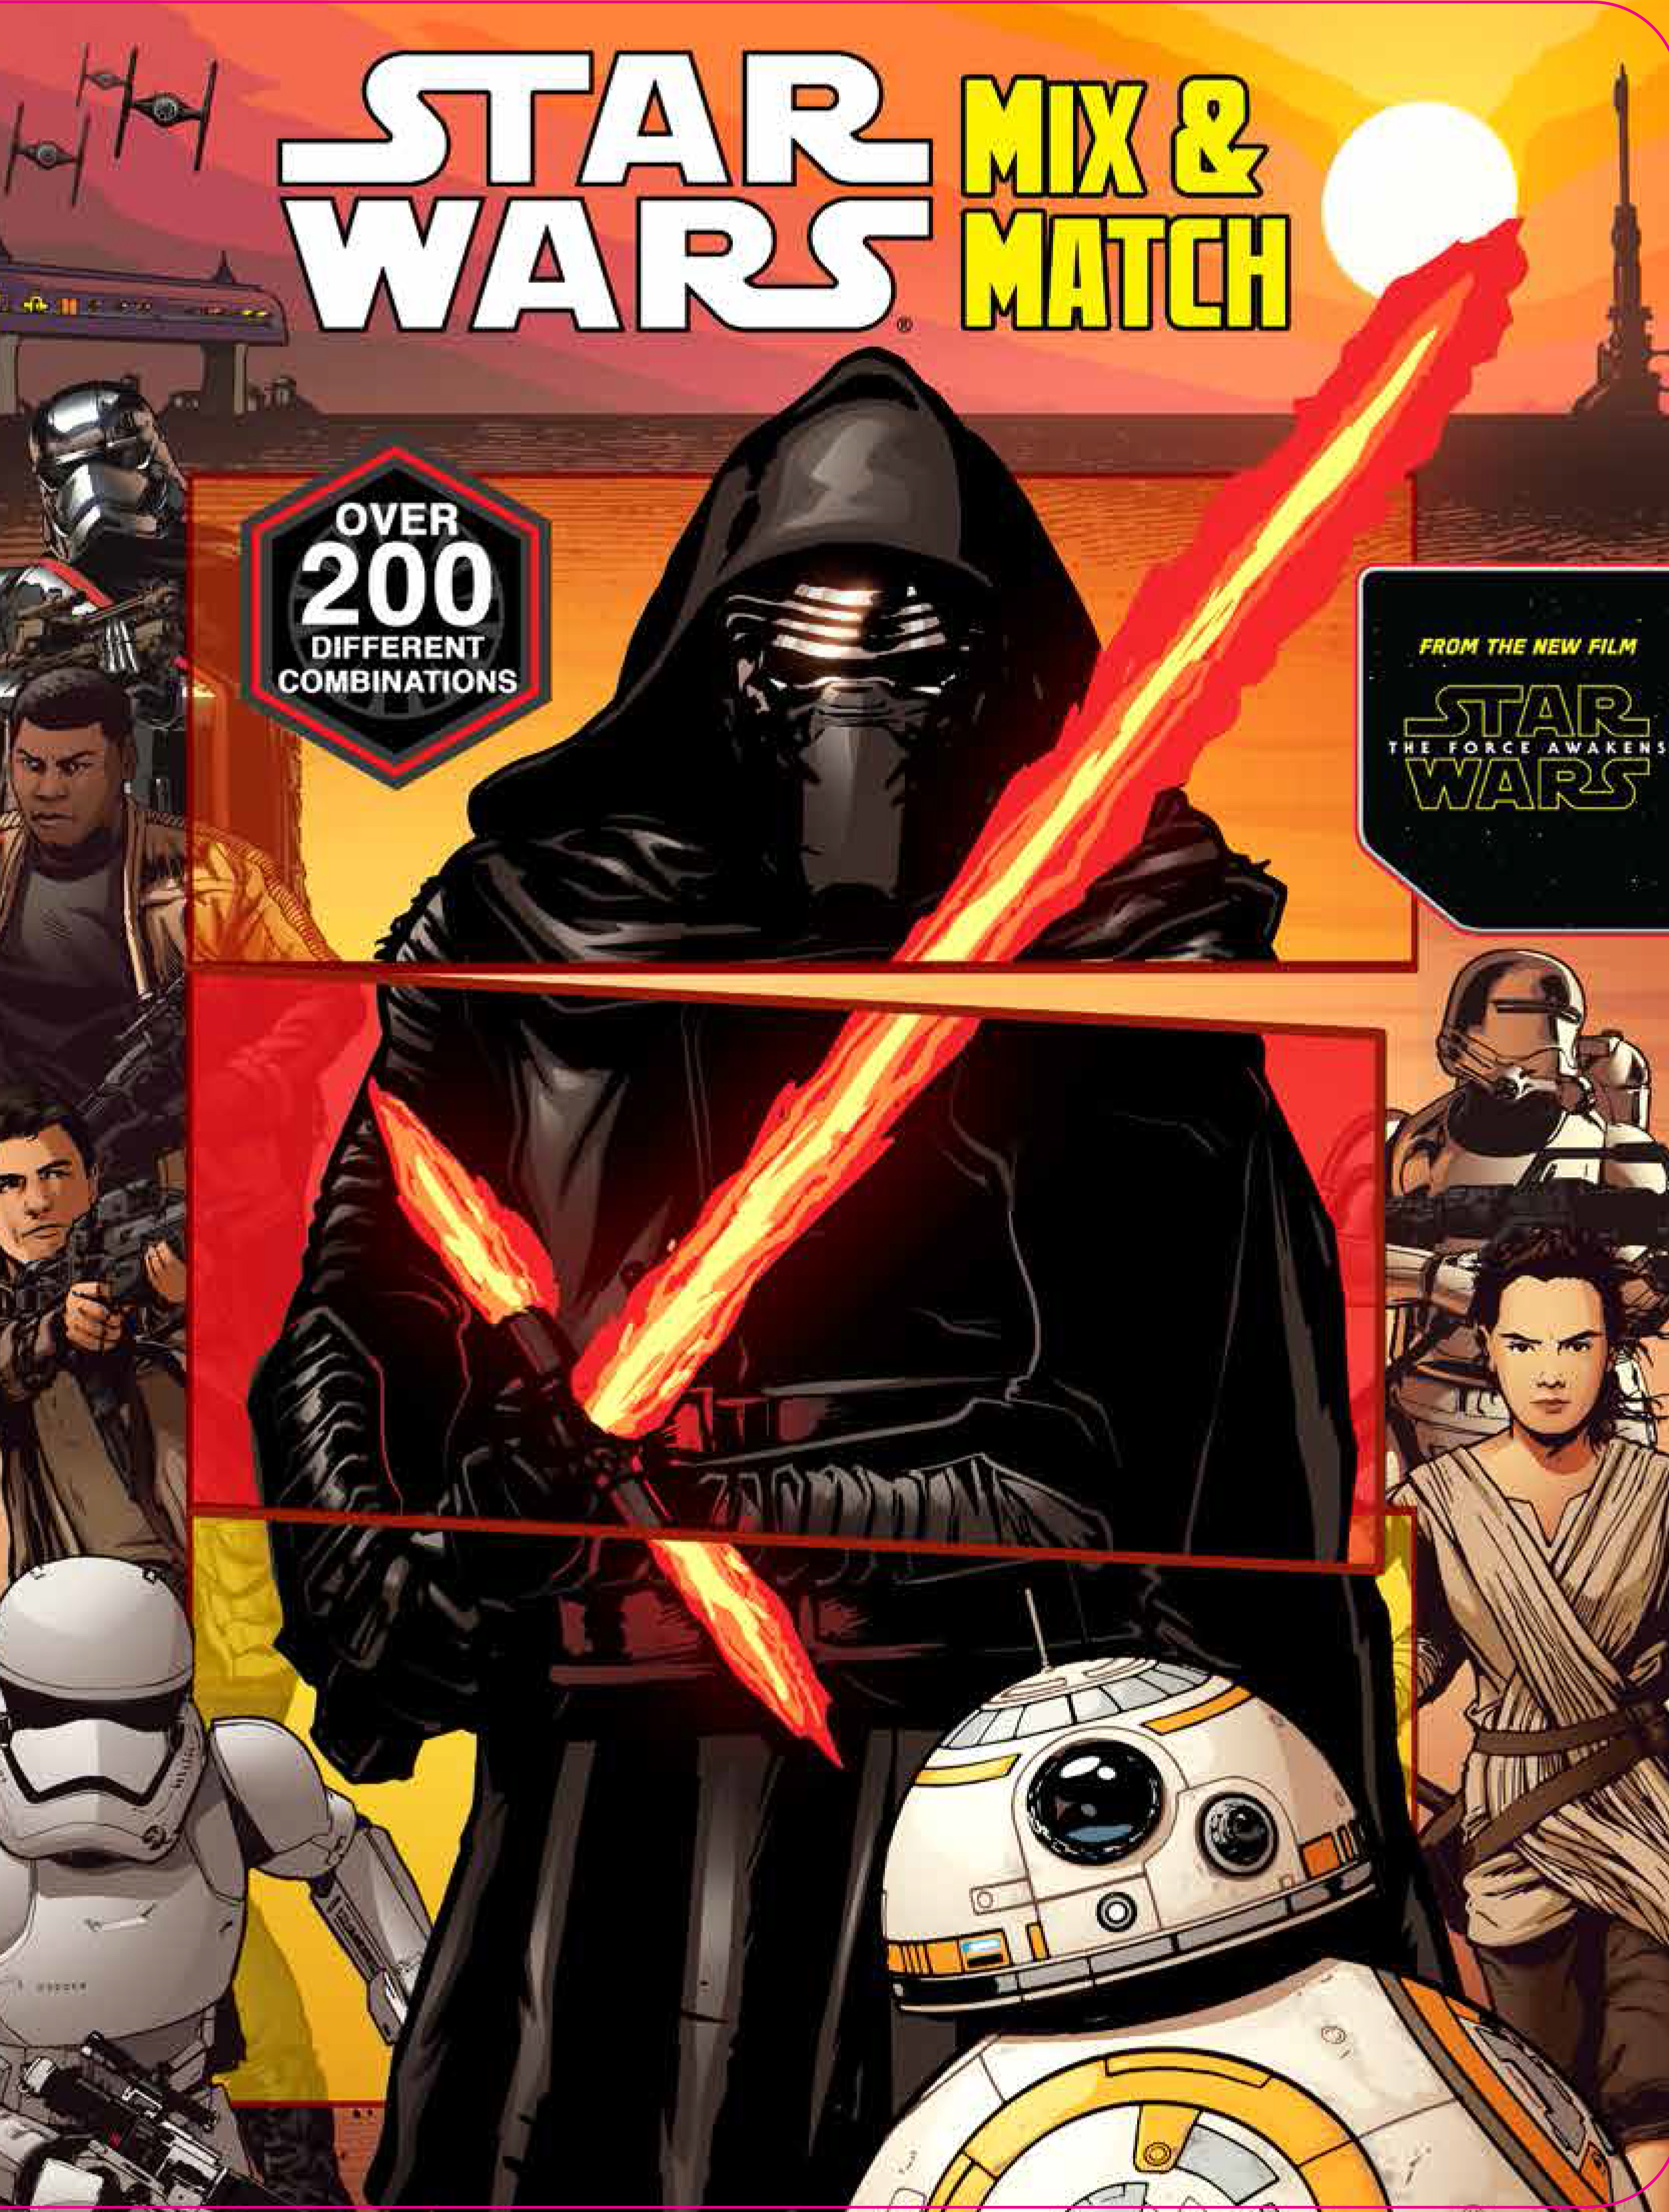 a galaxy of star wars the force awakens books coming december 18